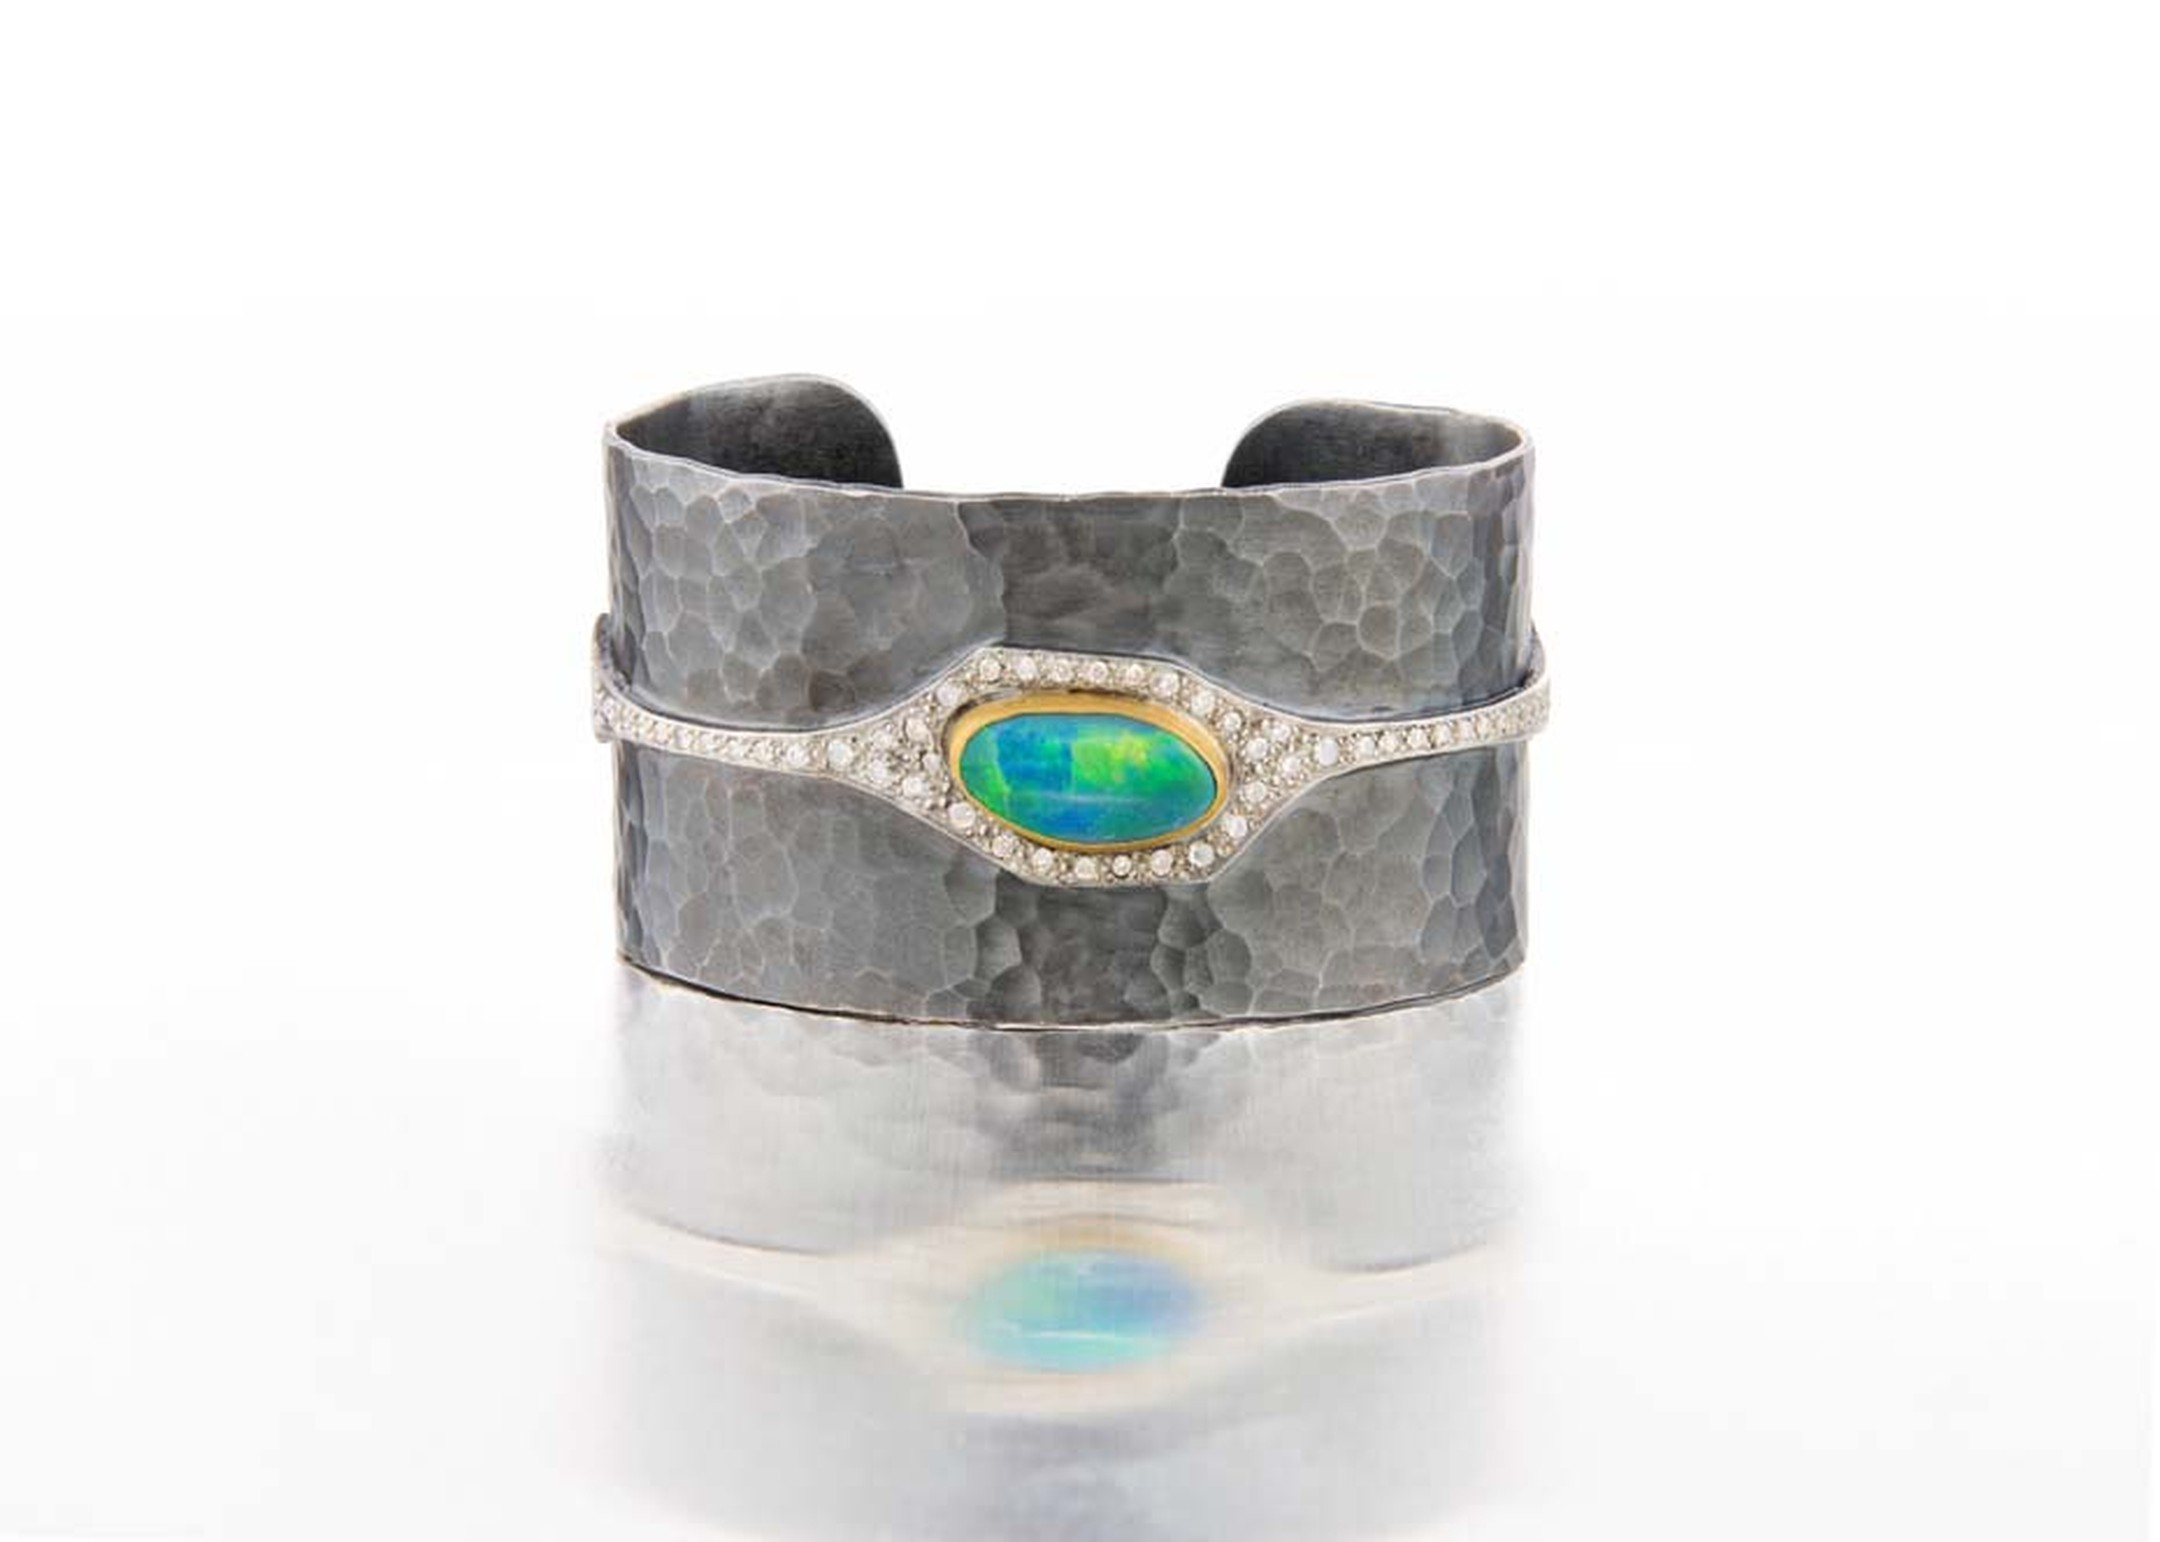 Annie Fensterstock blackened silver, white and yellow gold cuff featuring diamonds and a centre opal.